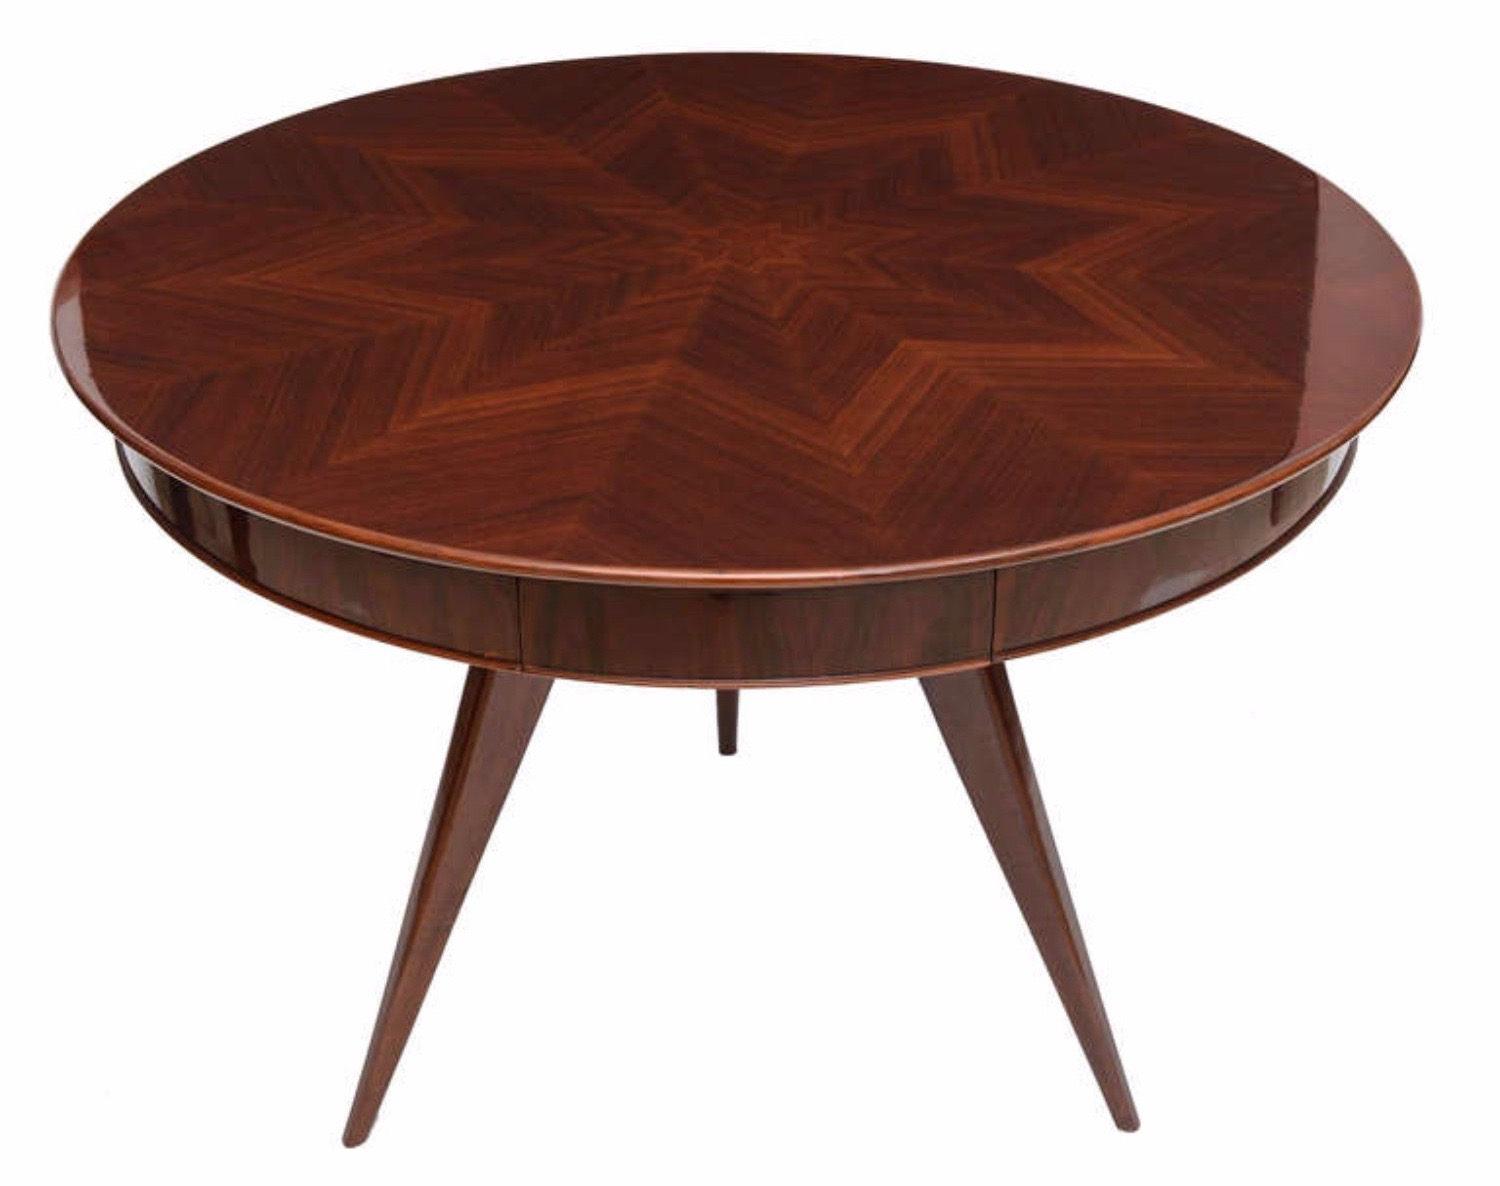 10 Inspiring Minimalist Tables coffee tables 10 Inspiring Minimalist Coffee Tables wooden ct 1500 1